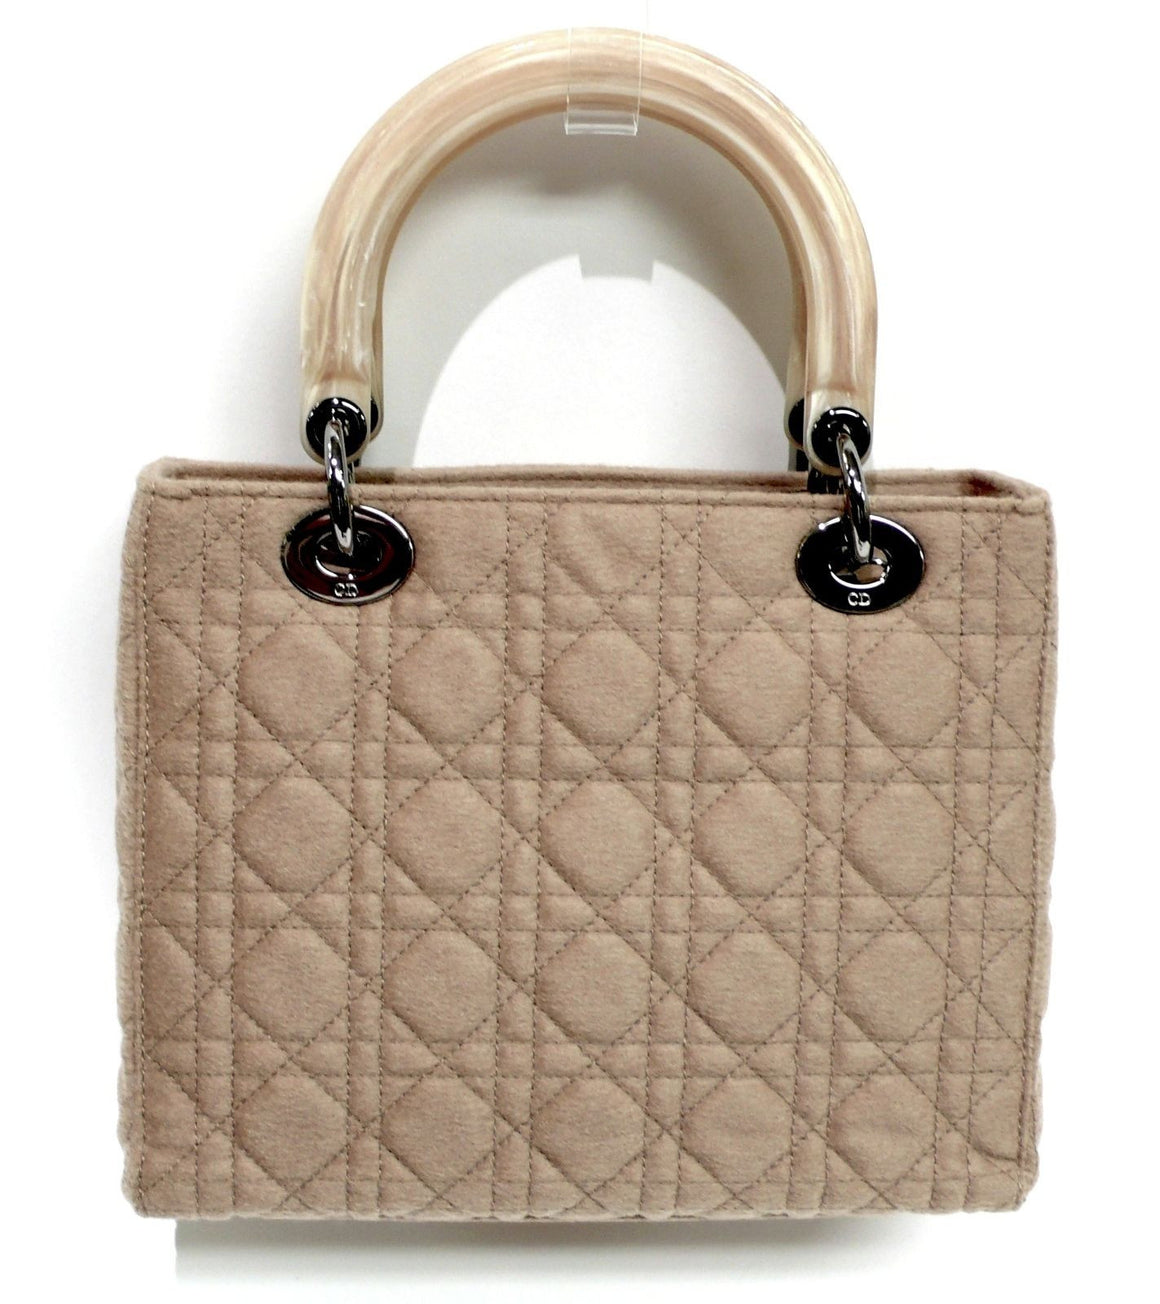 bisbiz.com CHRISTIAN DIOR LTD EDITION Iconic Lady Dior Camel Cannage Quilted Felt Hand Bag - Bis Luxury Resale